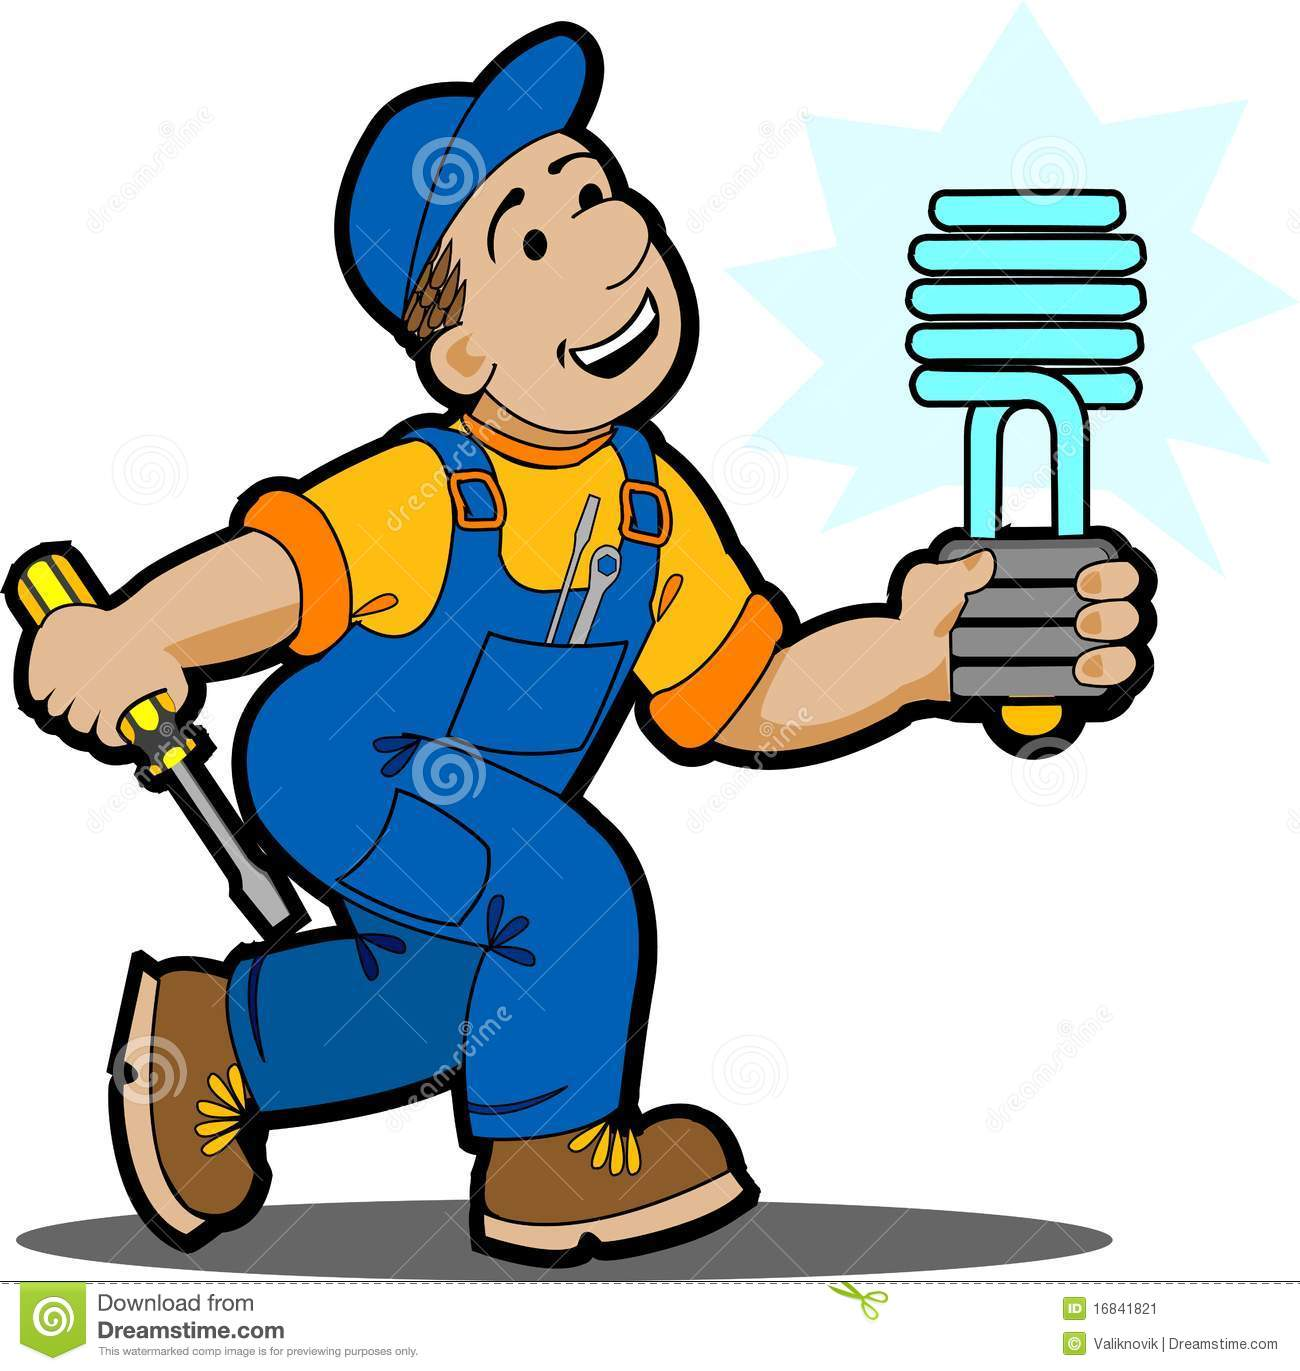 202878320 in addition Post toilet Icon For Facebook 90097 furthermore Handyman Warranty also Google Home Services Concierge also Article 5ce49bfa 0b52 11e7 8dc0 577df91cb466. on plumbing clip art